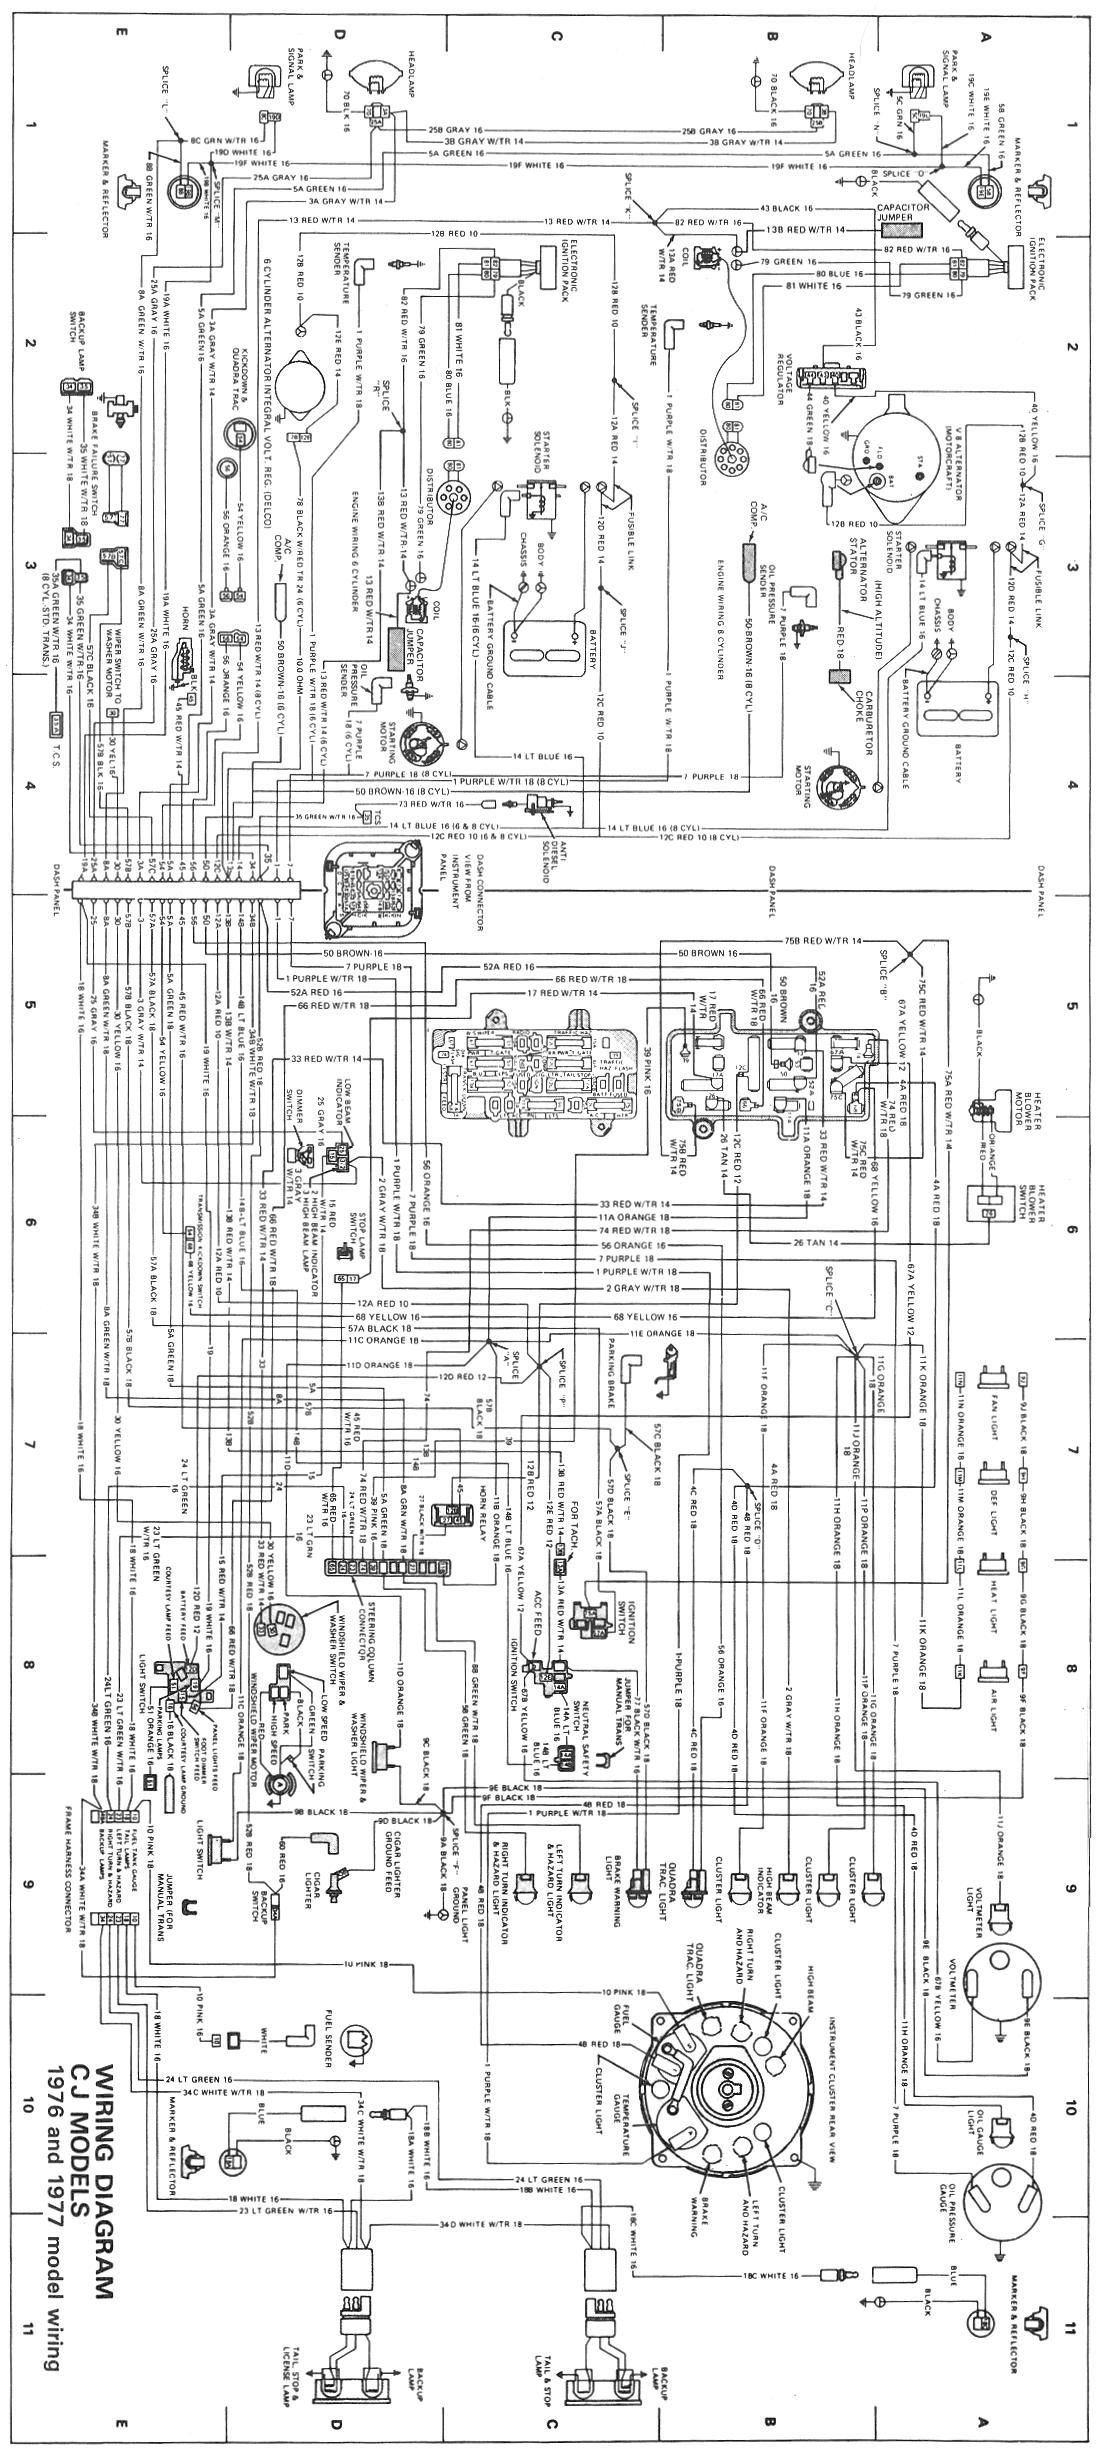 8d25ded6e3673519e155875e09844e5e cj wiring diagram 1976 1977 jpg 1,100�2,459 pixels 1976 jeep cj5 Painless Wiring Harness Diagram at bakdesigns.co